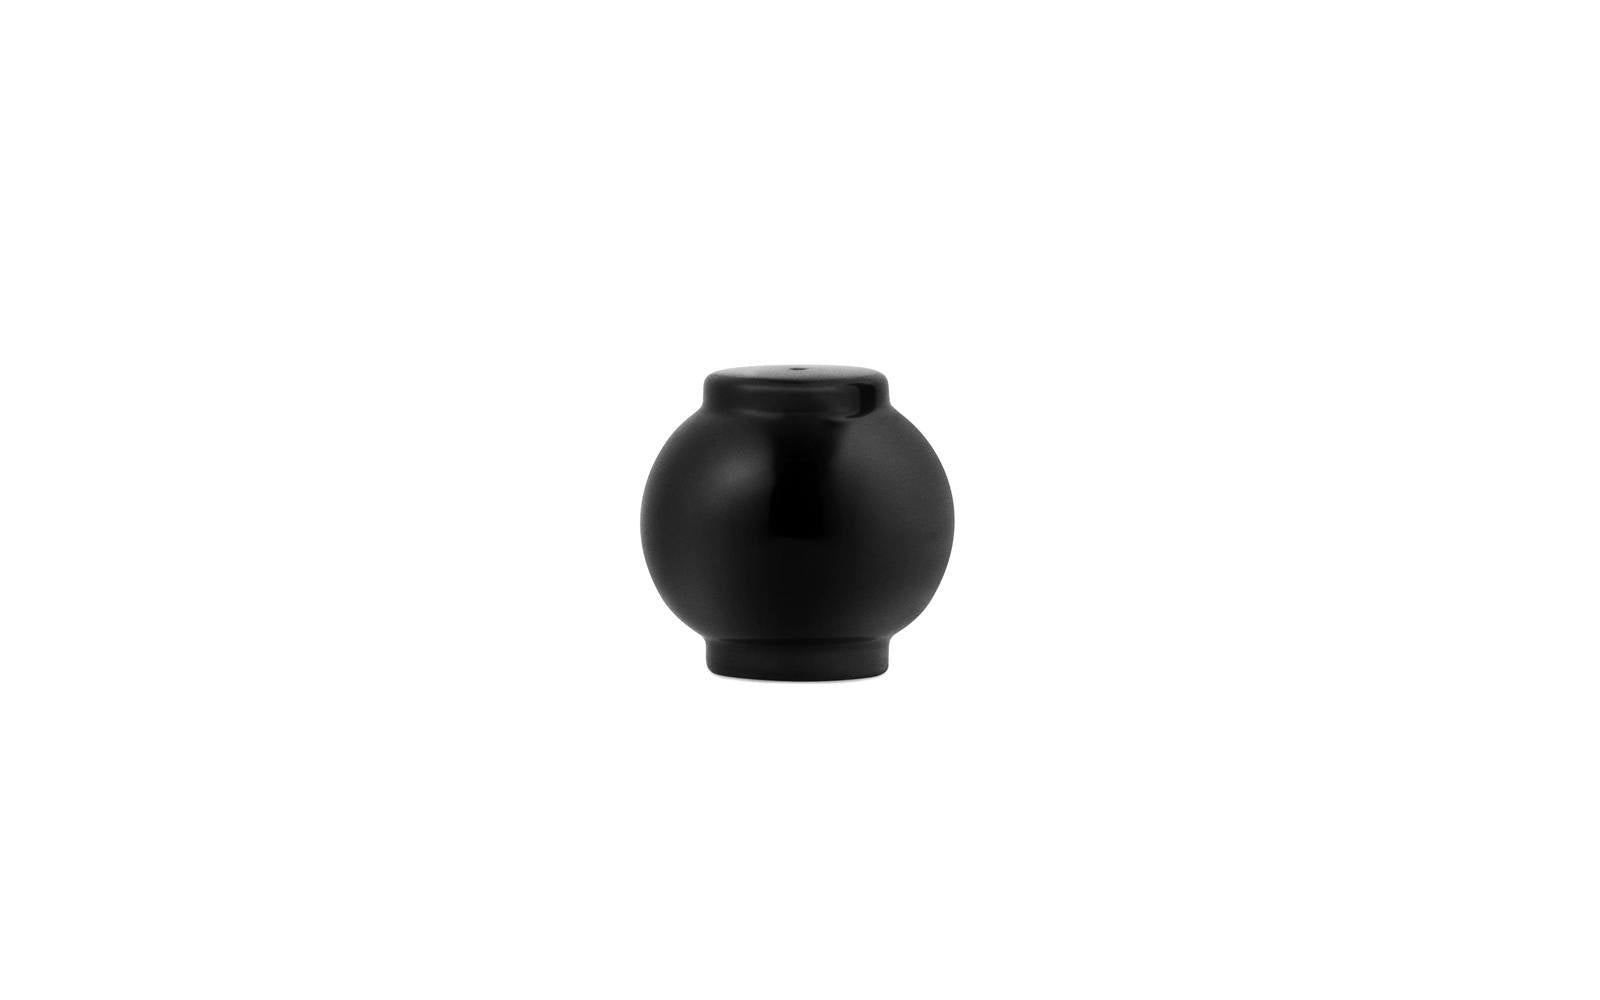 Normann Copenhagen salt- og pepperbøsse